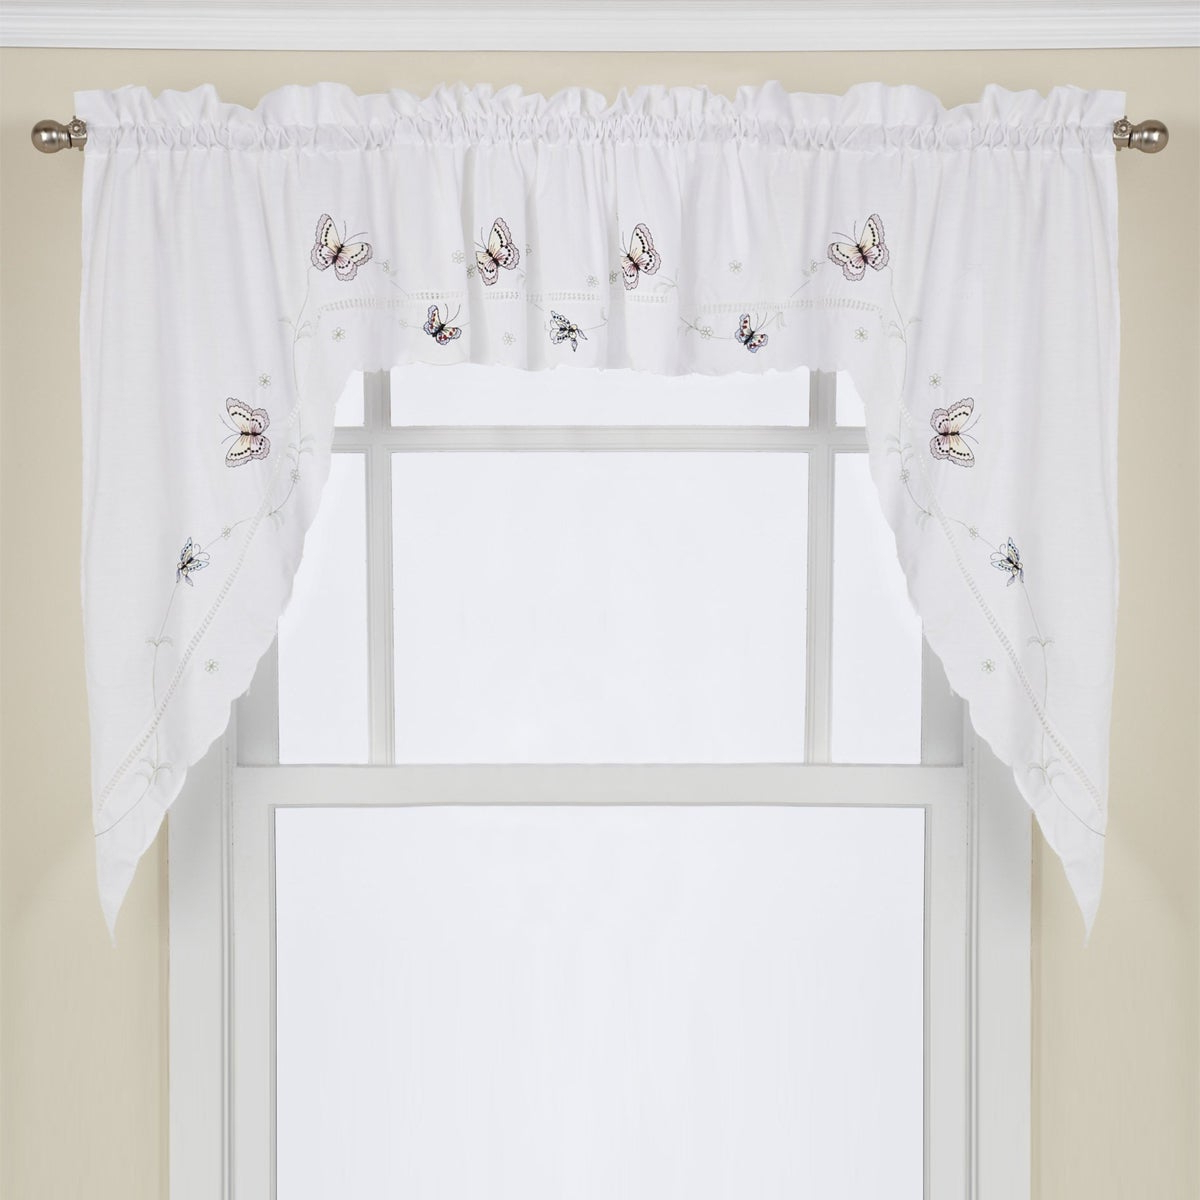 Kitchen Curtain Tiers Throughout Preferred Fluttering Butterfly White Embroidered Tier, Swag, Or Valance Kitchen  Curtains (View 9 of 20)